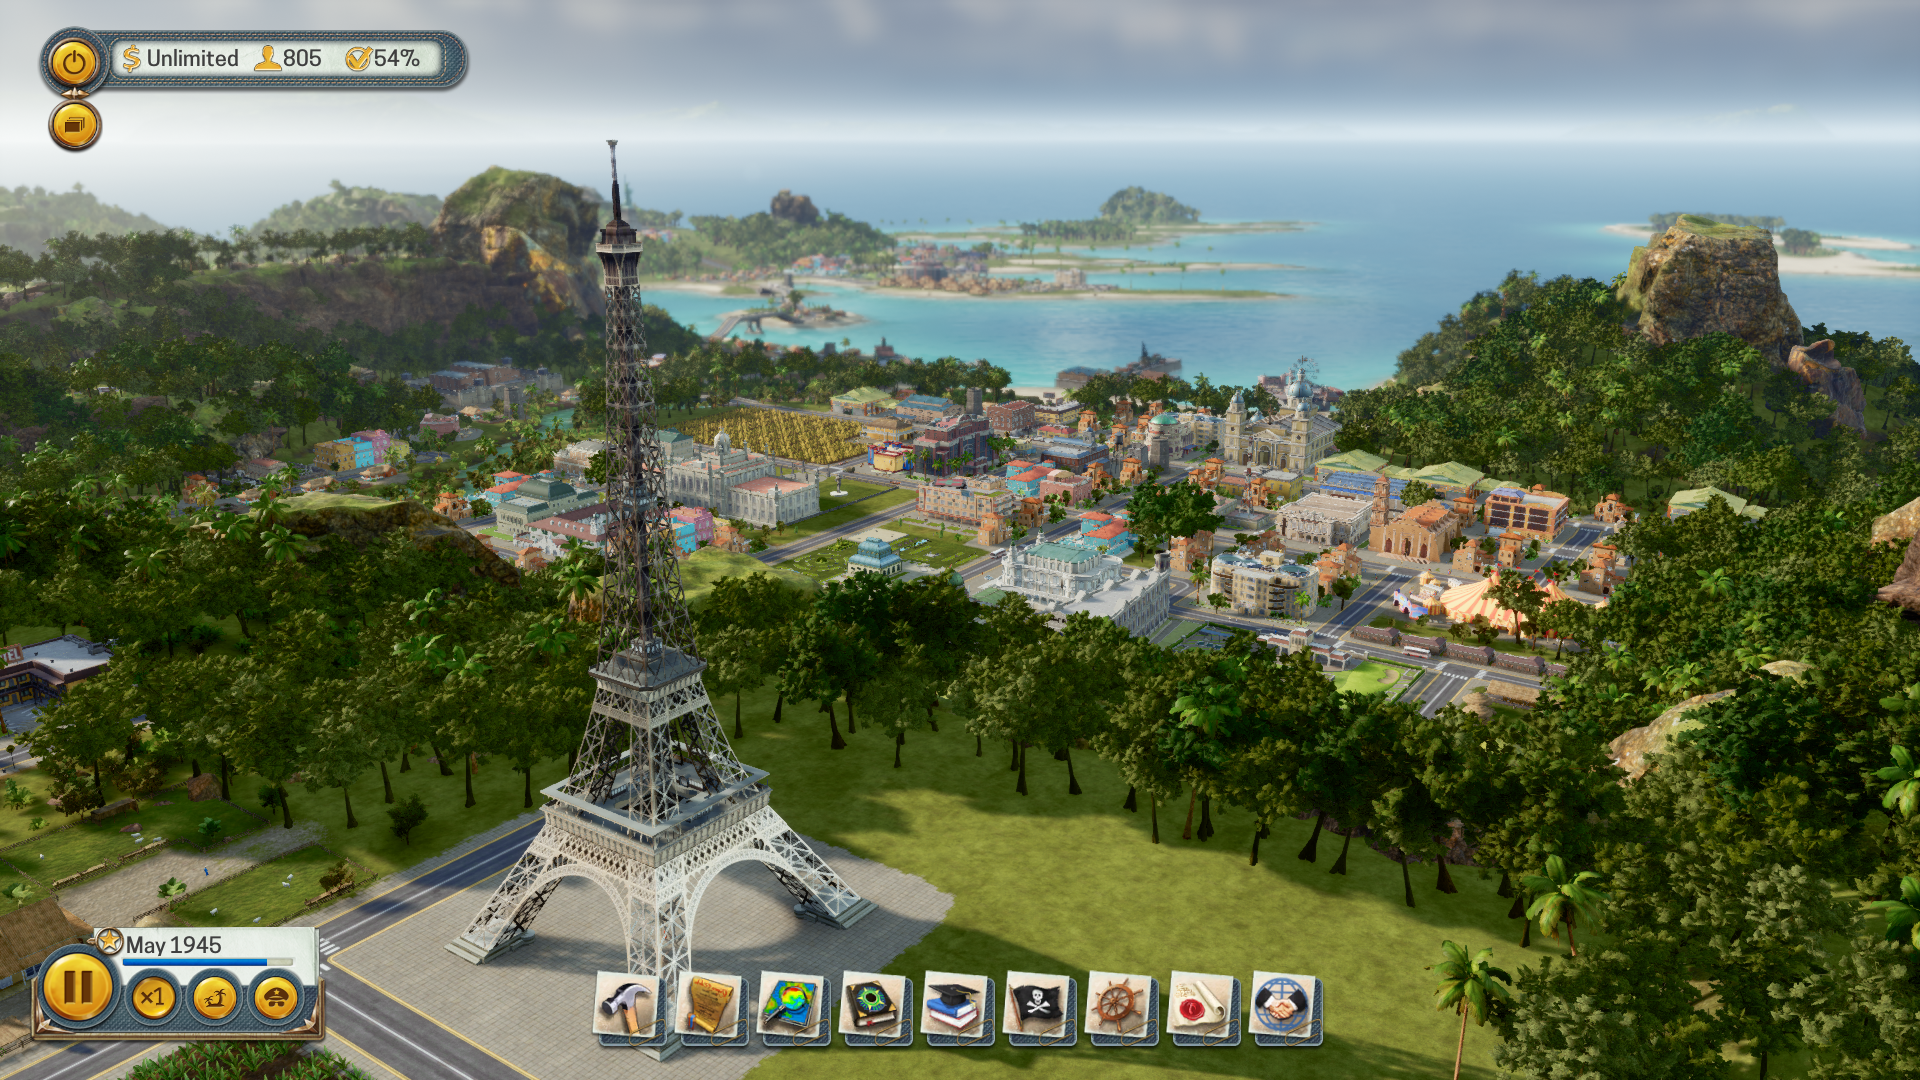 Tropico 6 New Gameplay Trailer Shows New Features | GameWatcher